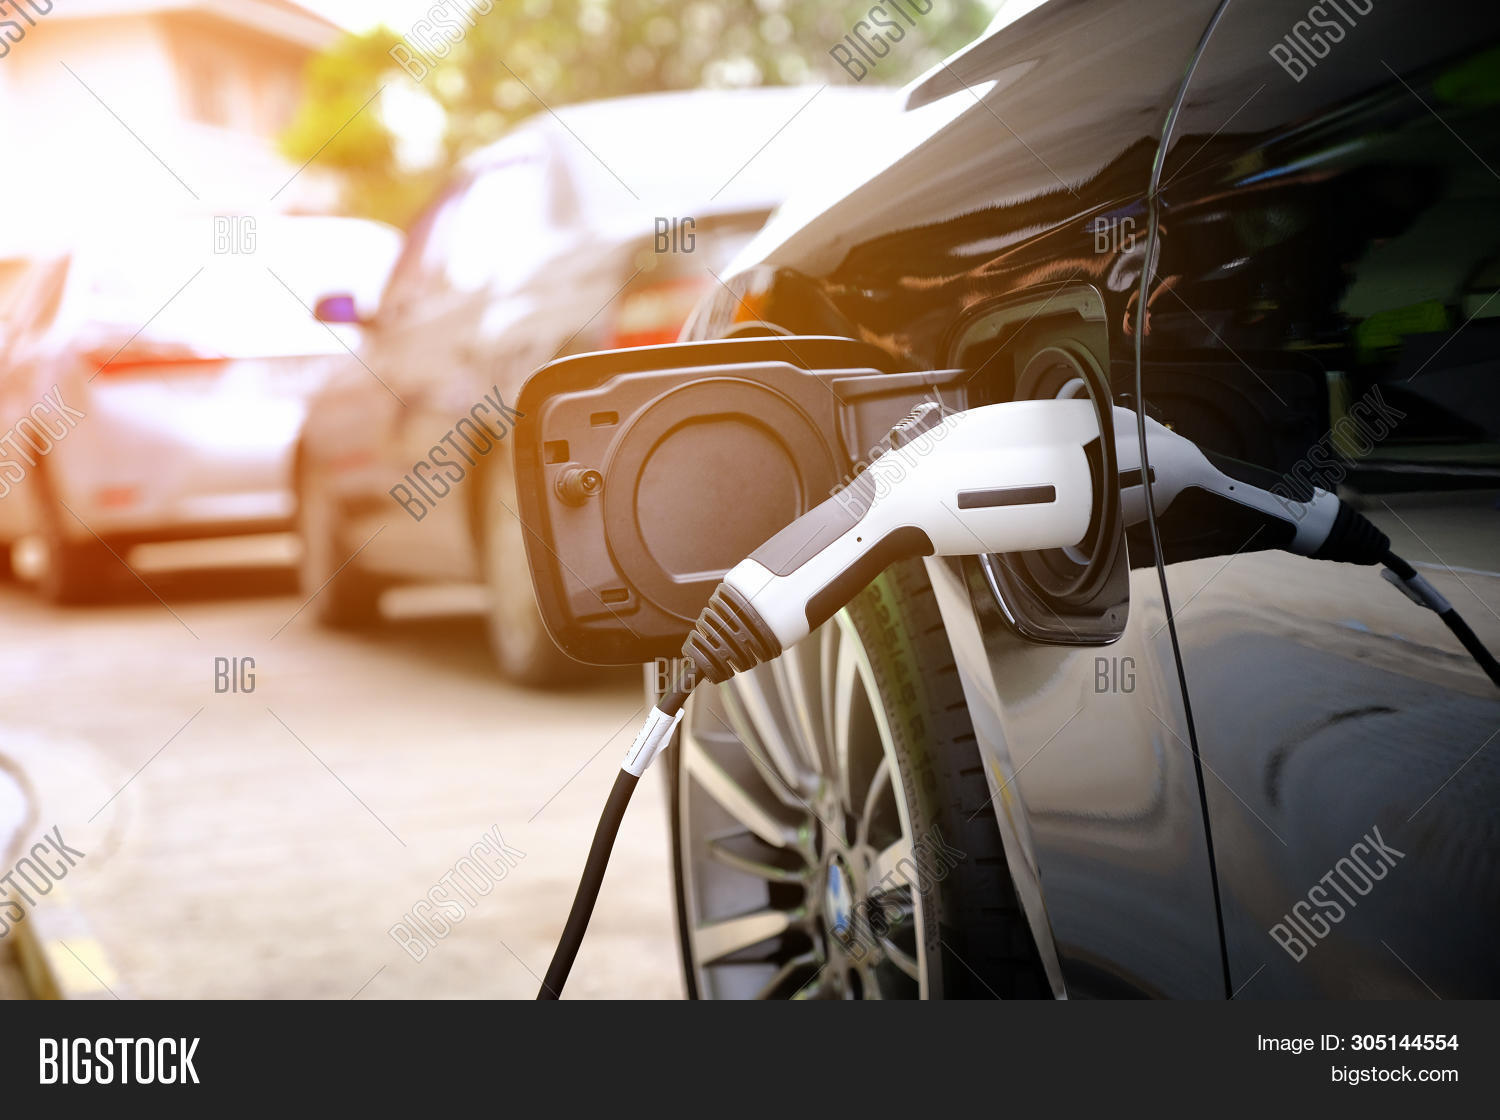 Charging Modern Electric Car Battery On The Street Which Are The Future Of The Automobile, Close Up